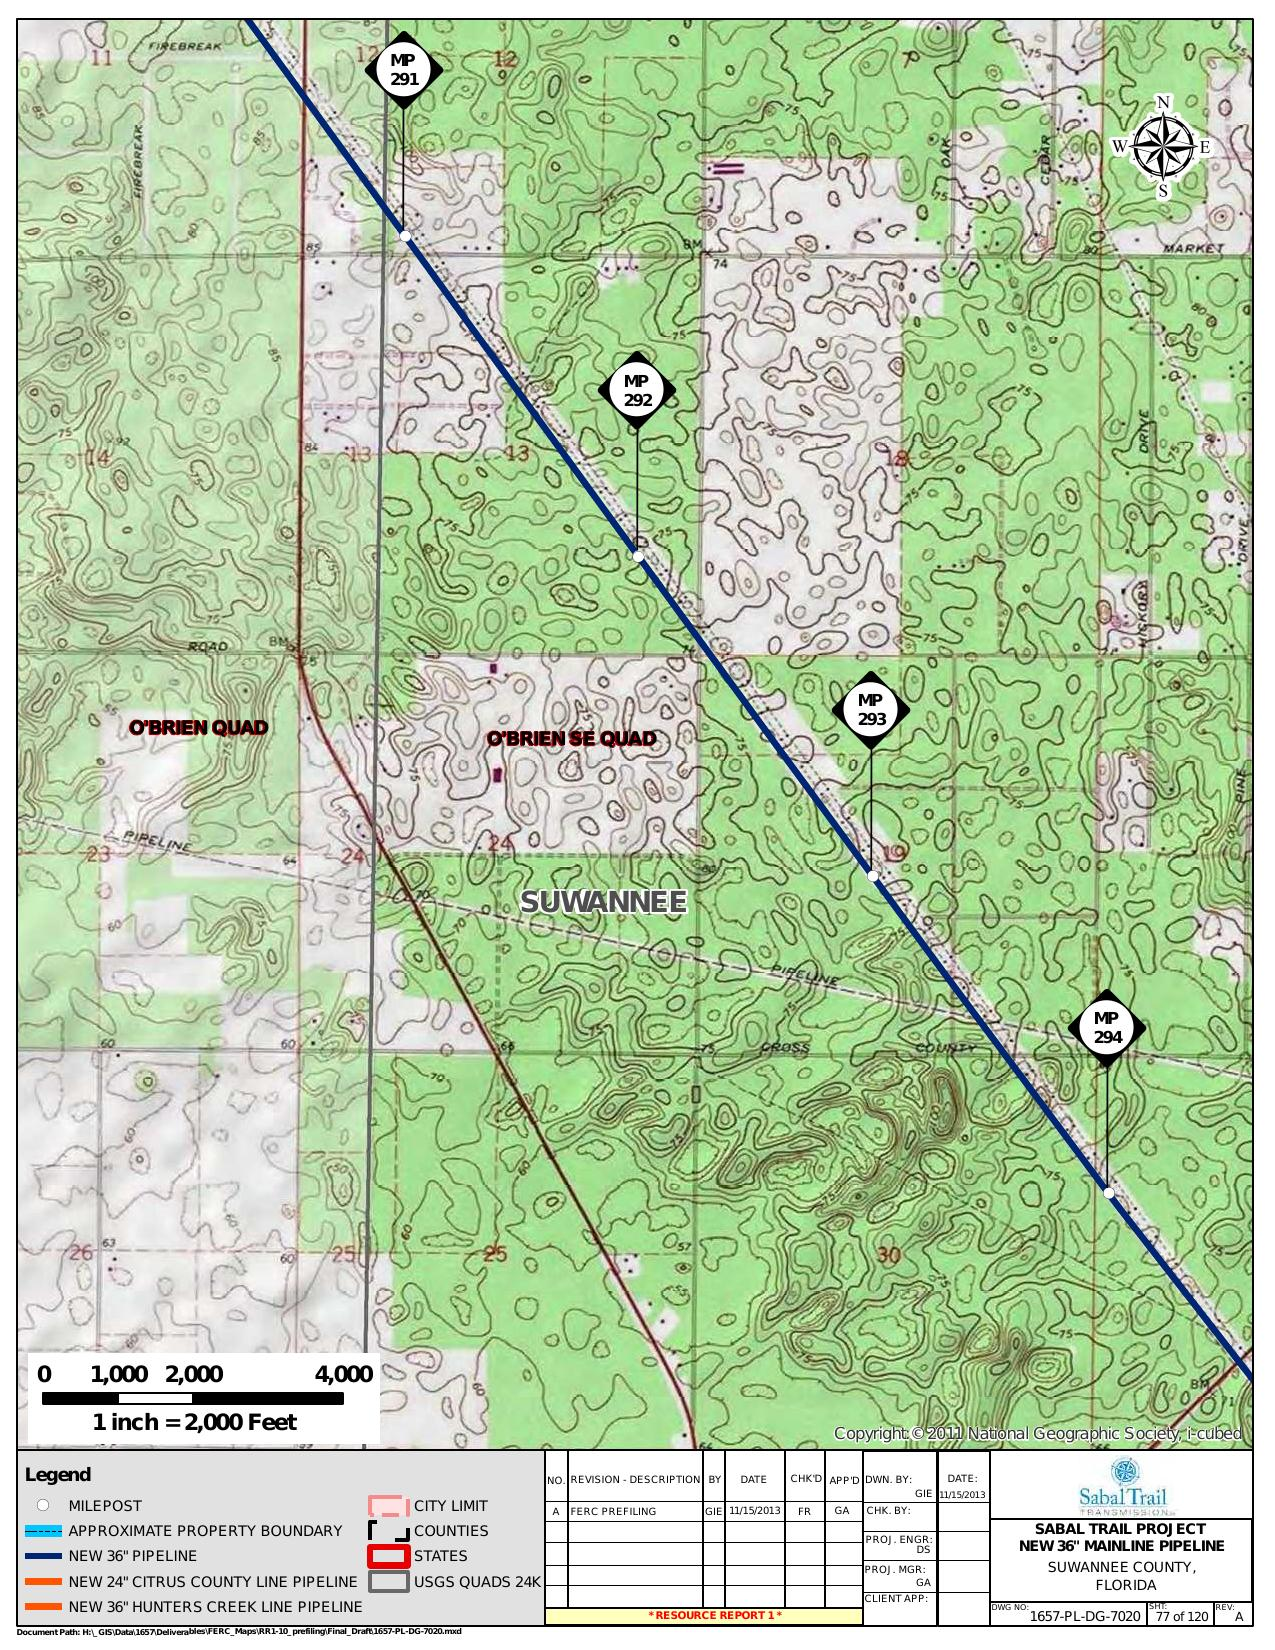 Obrien SE Quad, Suwannee County, Florida, in General Project Description, by SpectraBusters, for FERC Docket No. PF14-1-000, 15 November 2013, converted by SpectraBusters